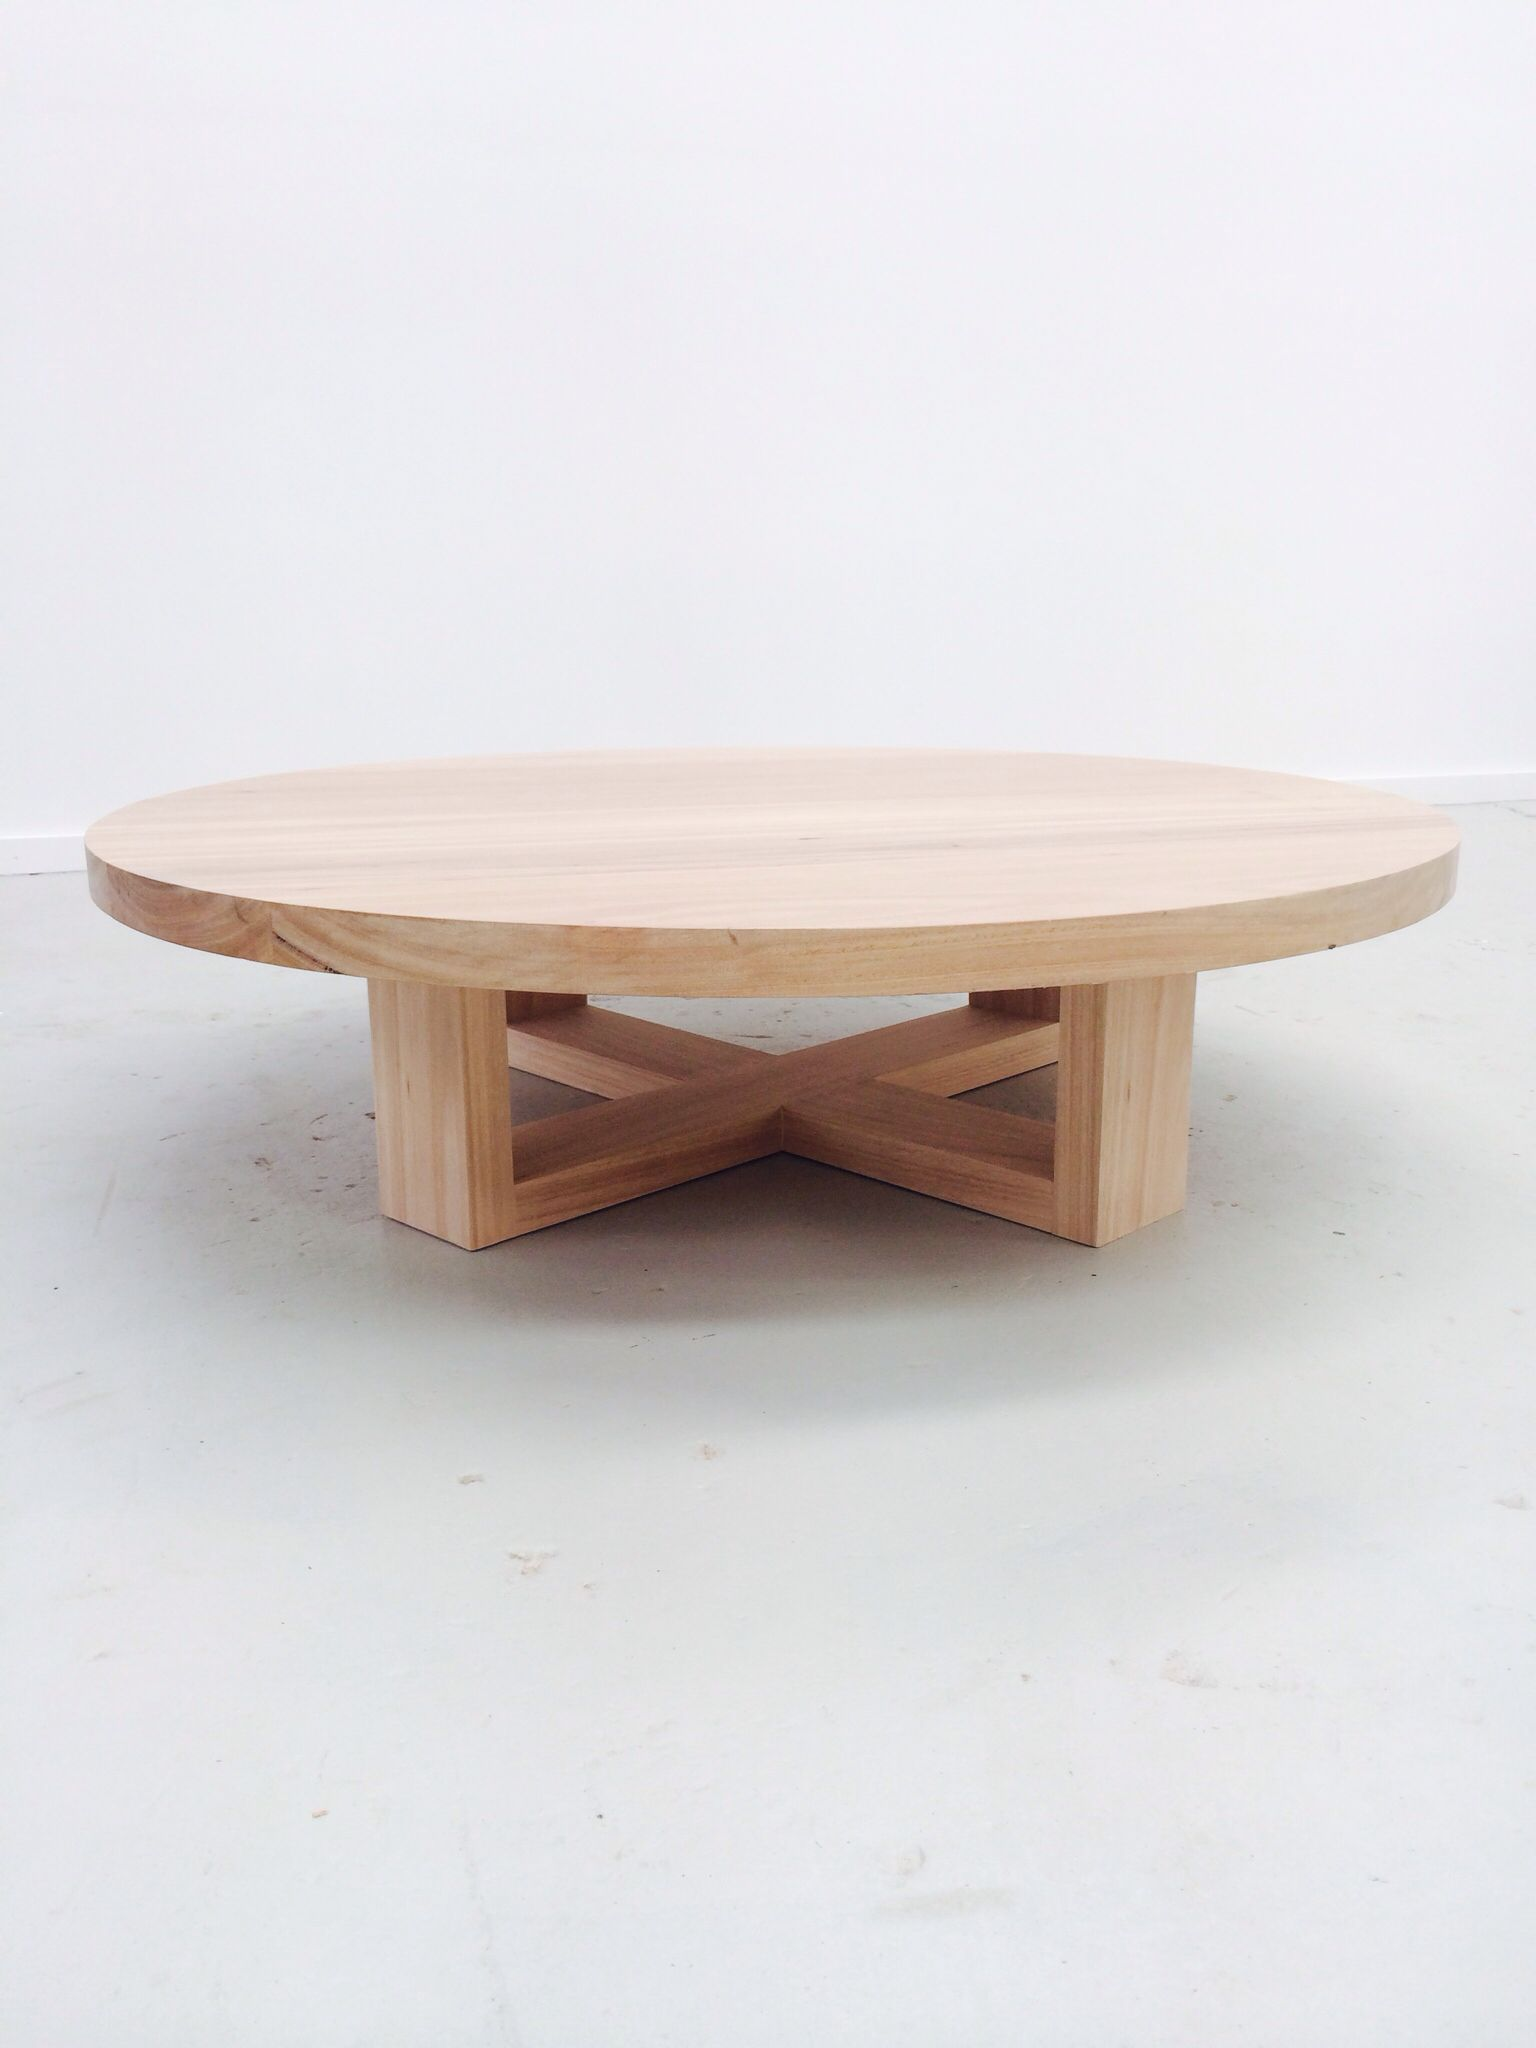 The Orbit Round Timber Coffee Table Coffee Table Round Wood